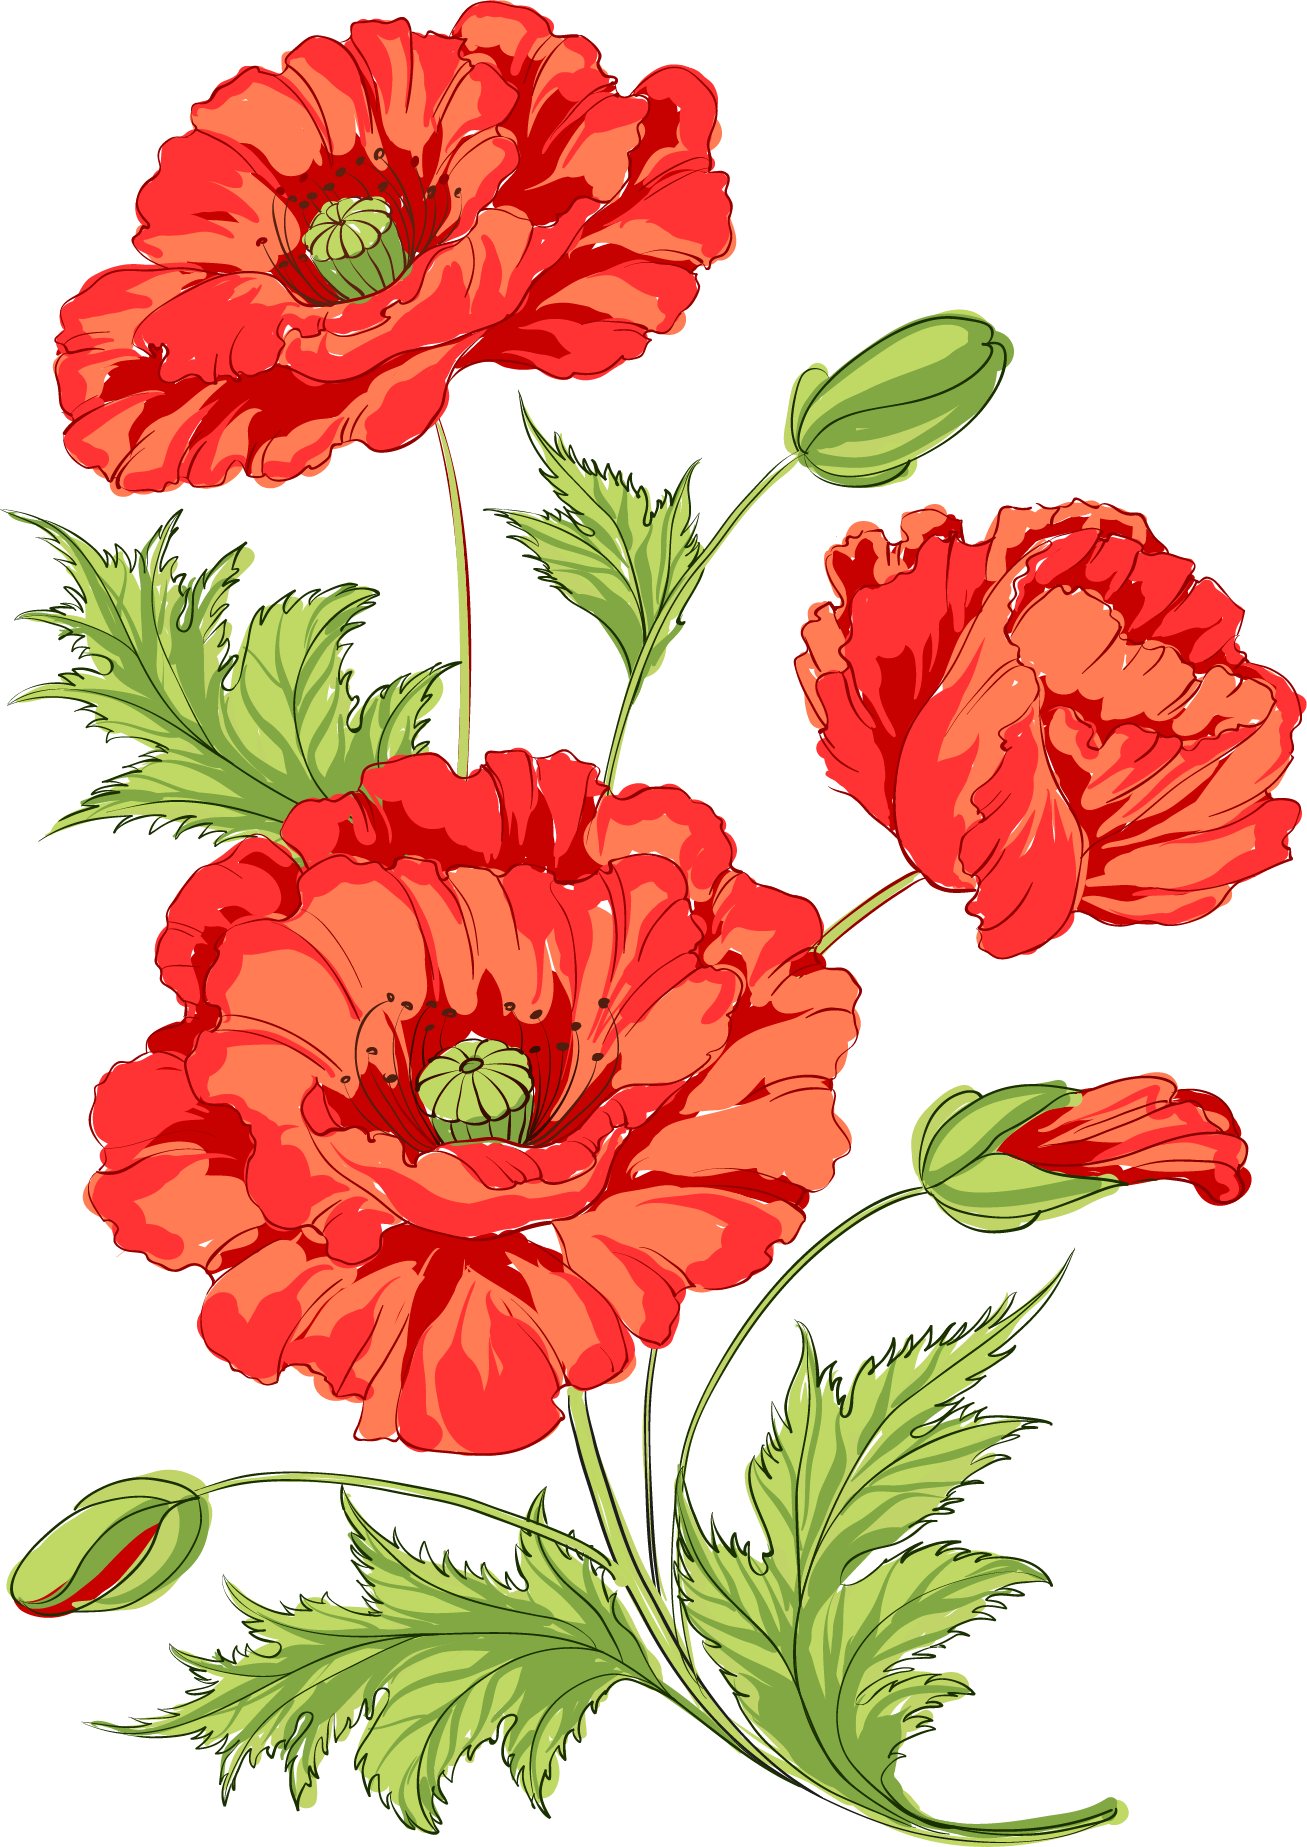 Flowers common opium watermelon. Poppy clipart daisy